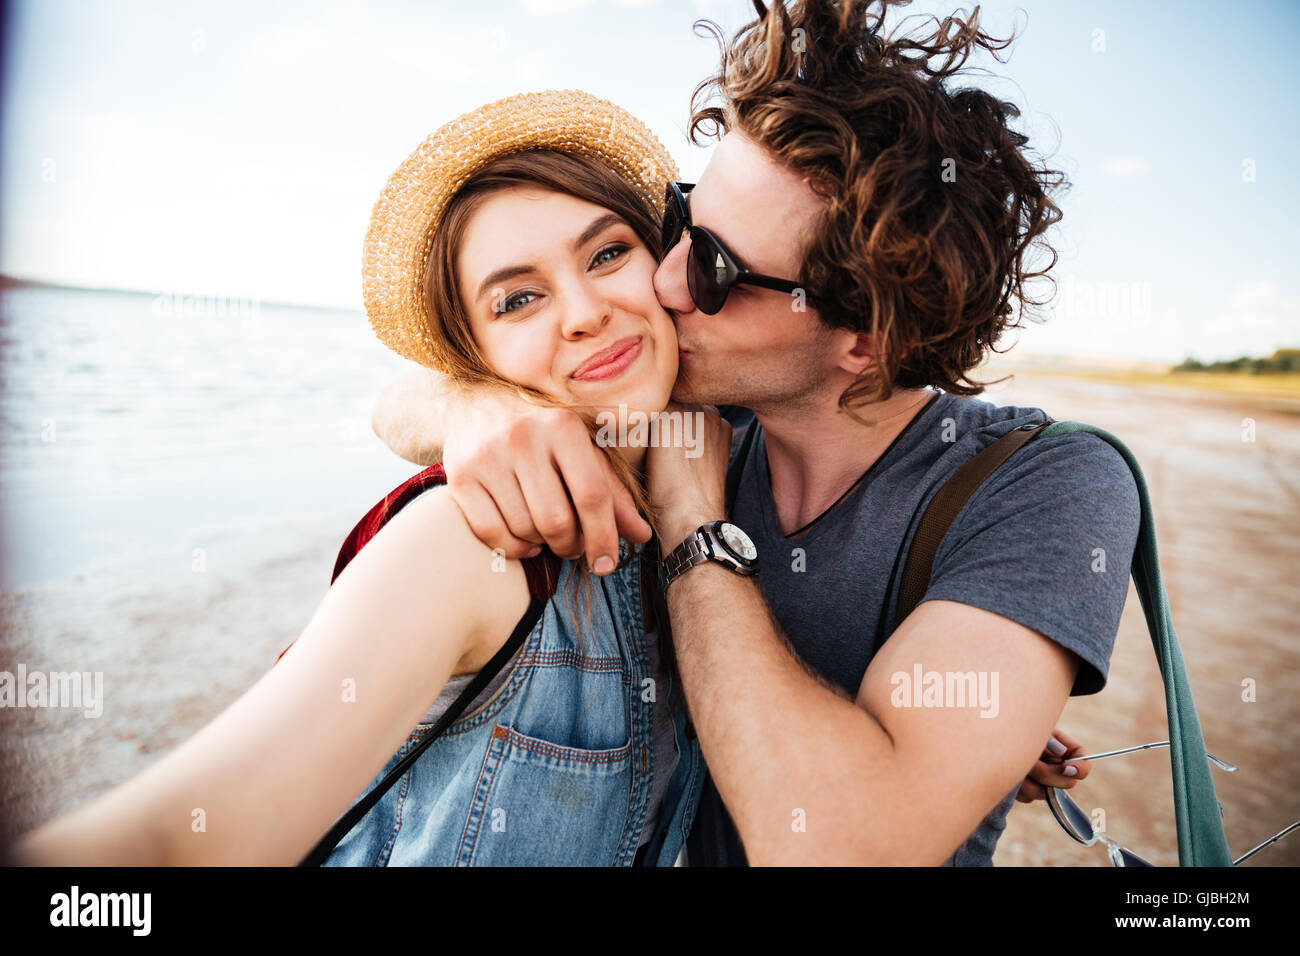 Happy young couple kissing and taking selfie outdoors - Stock Image